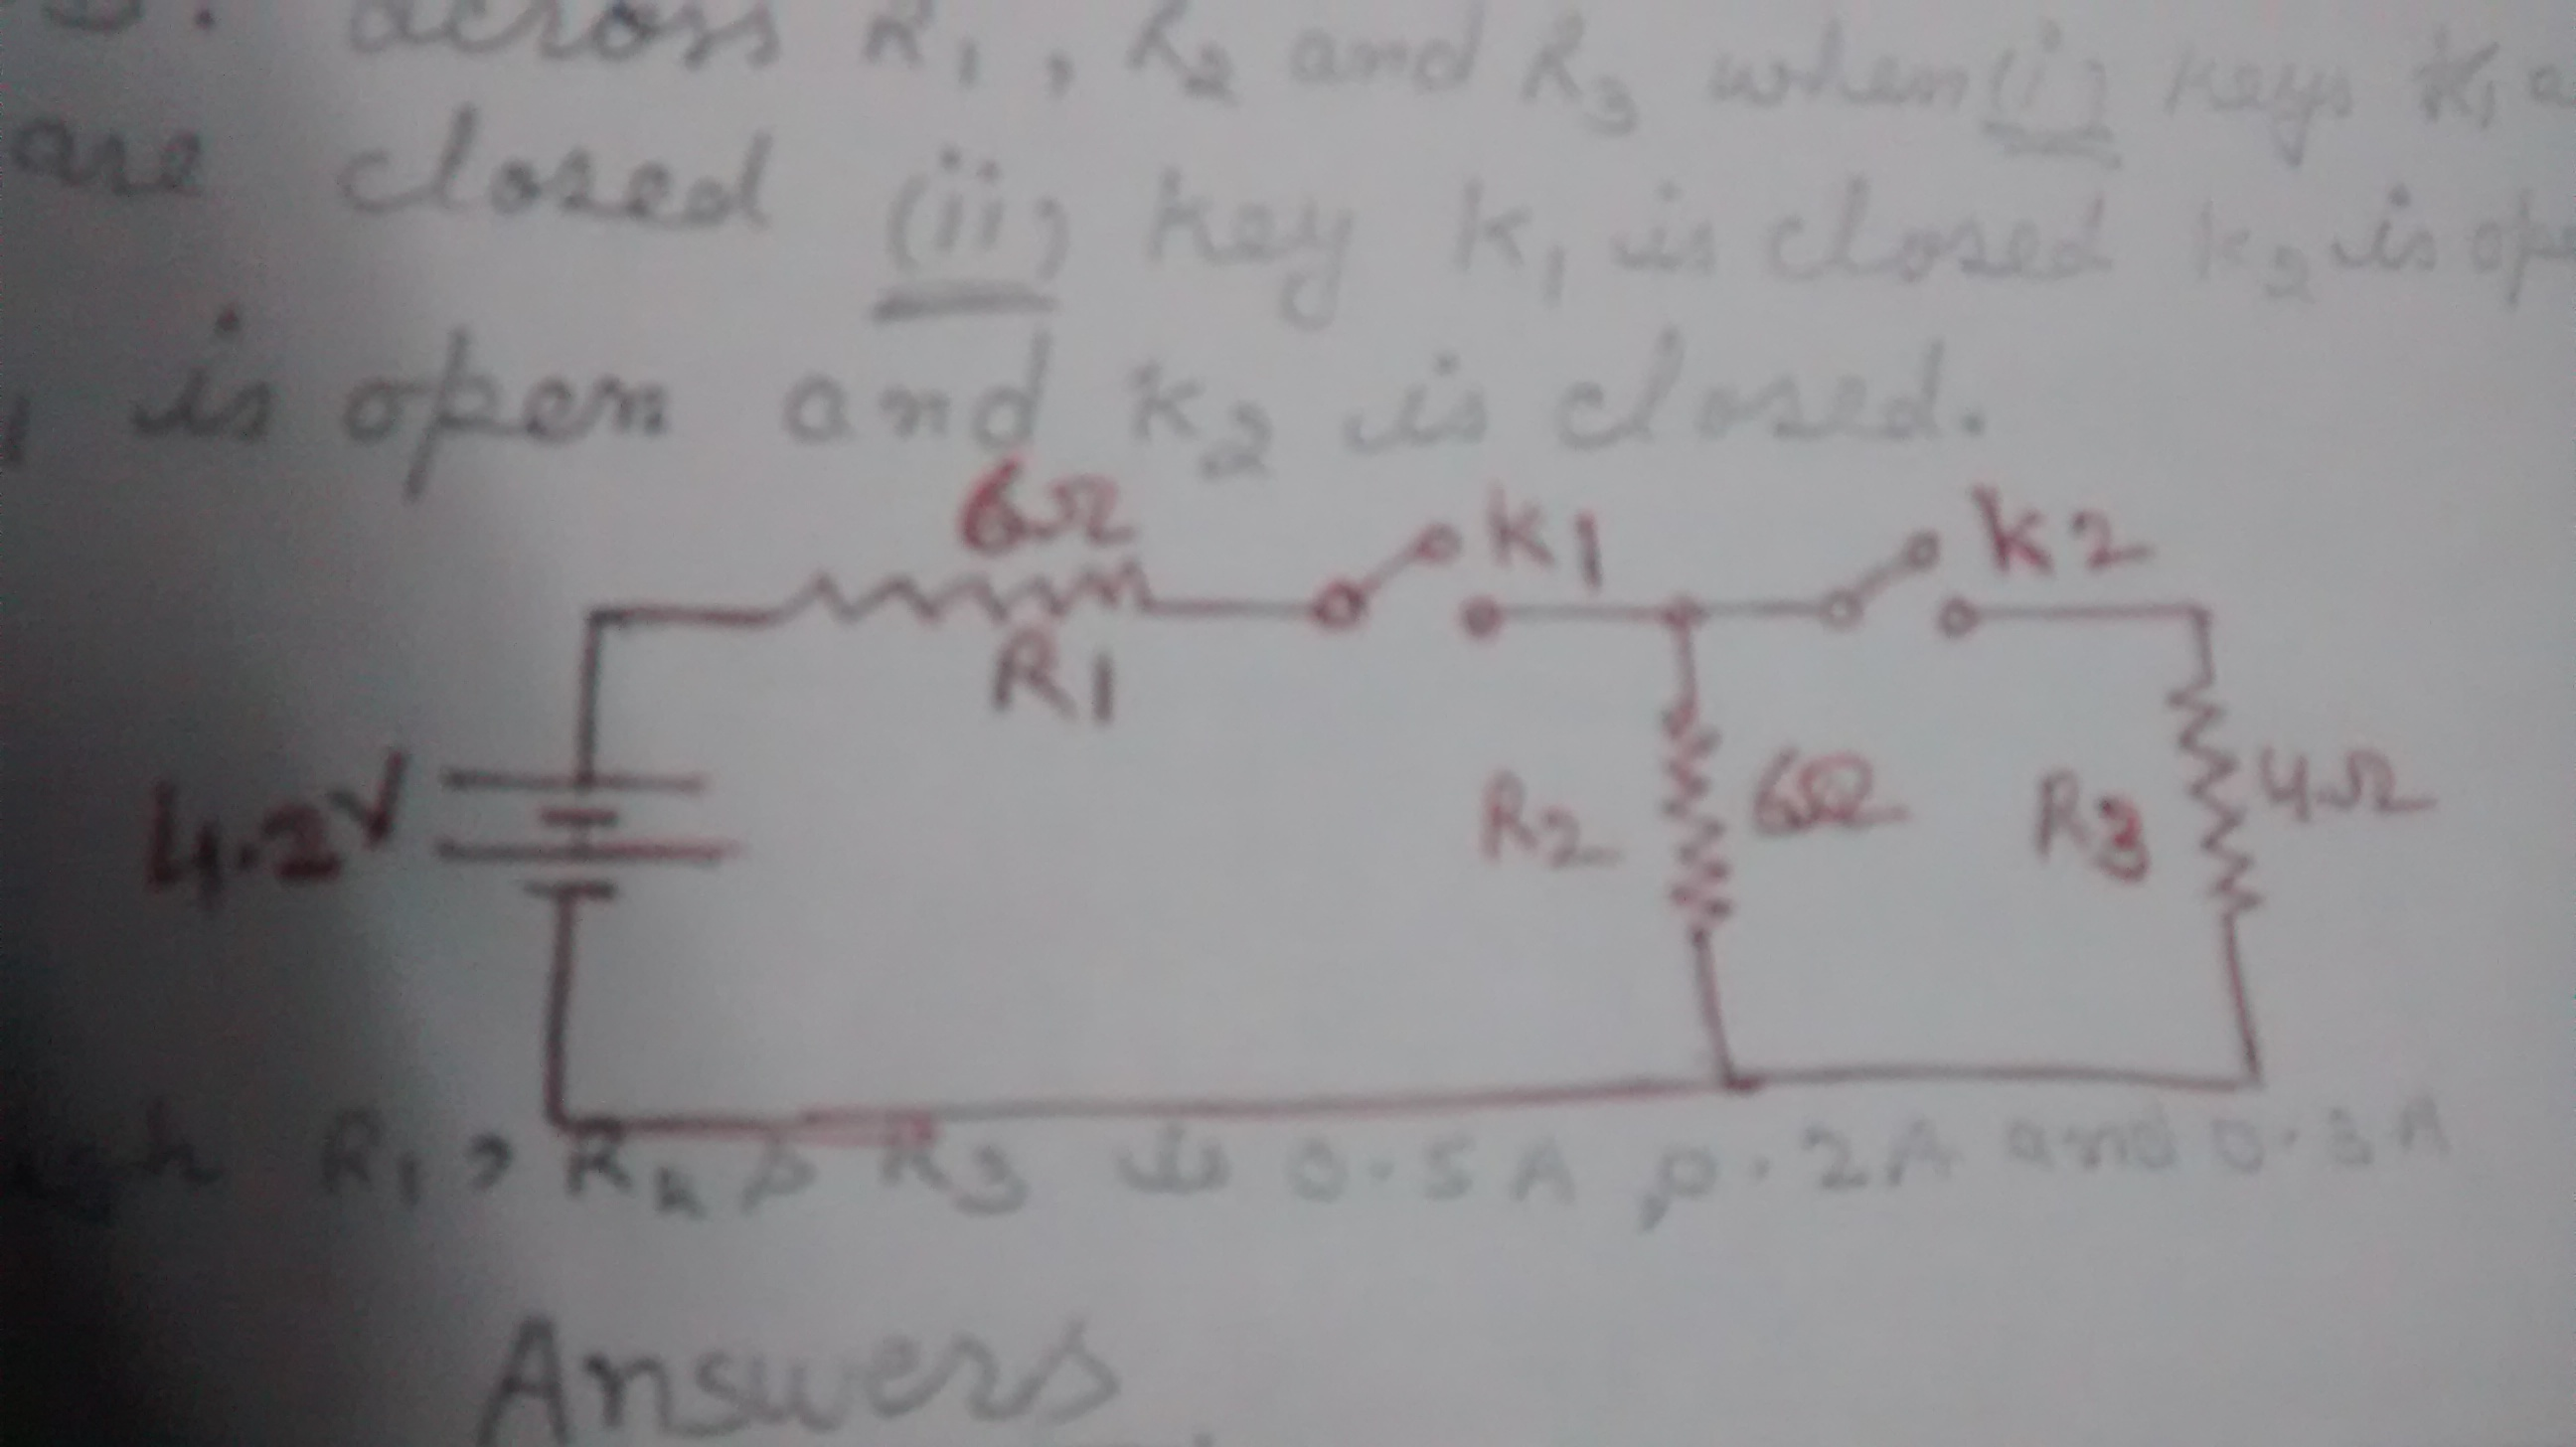 A Circuit Is Set Up As Shown In The Figure Calculate The